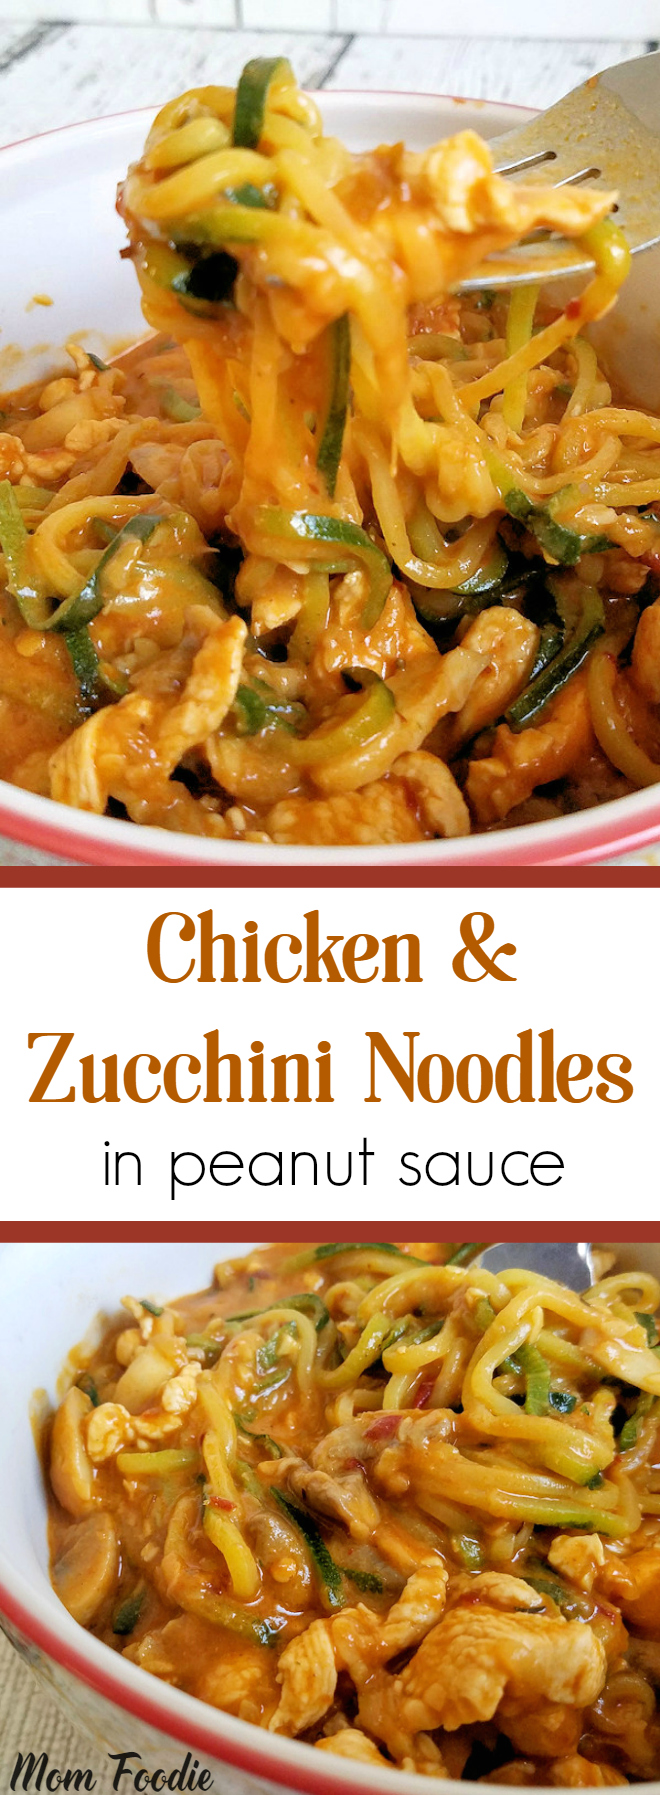 Chicken & Zucchini Noodles in Peanut Sauce - Stir Fry Recipe